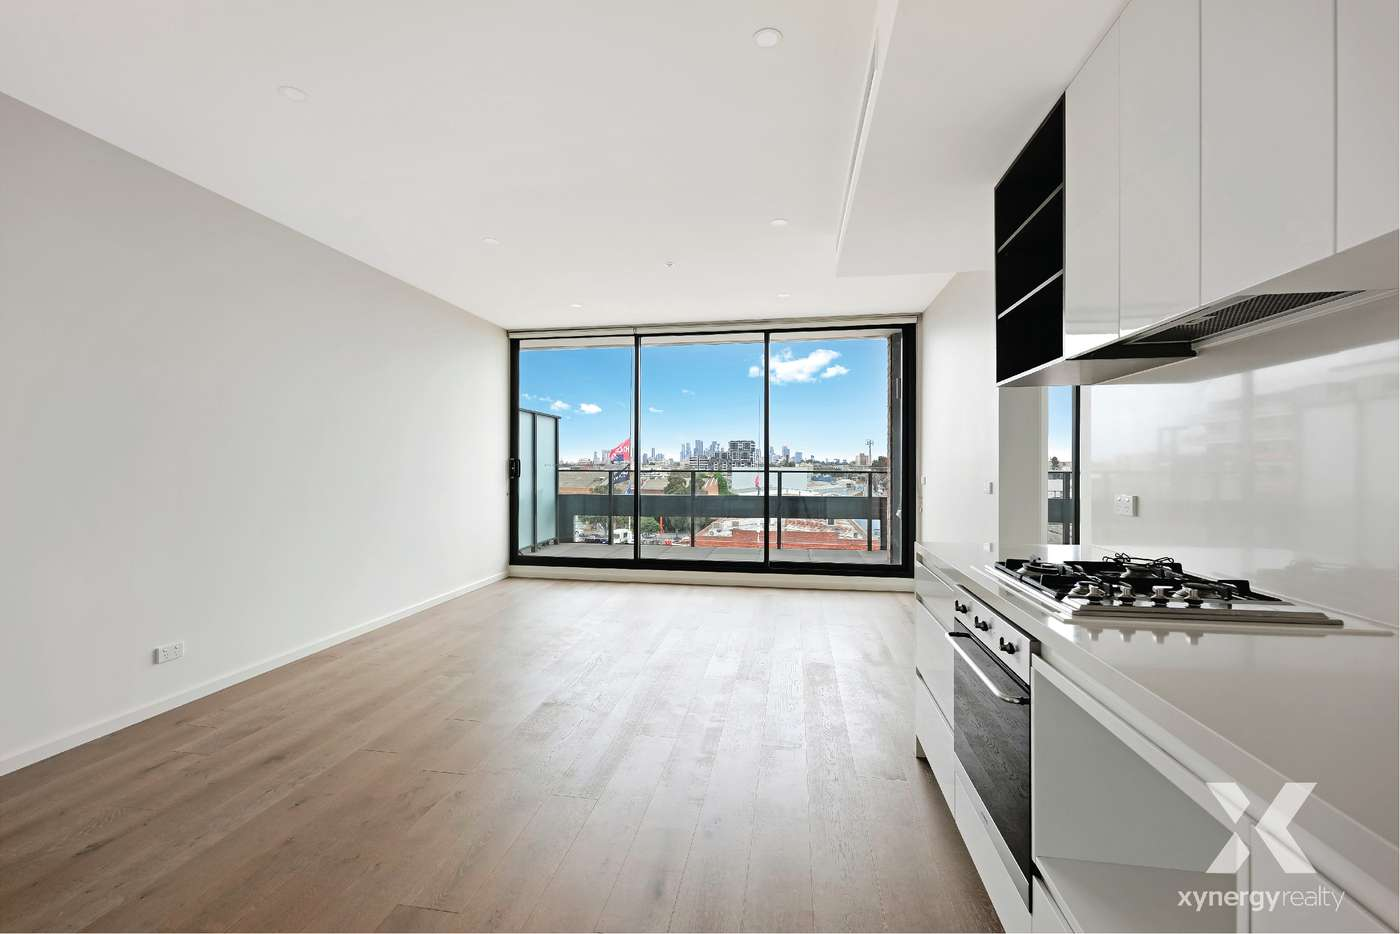 Main view of Homely apartment listing, 301/2 Duckett Street, Brunswick VIC 3056